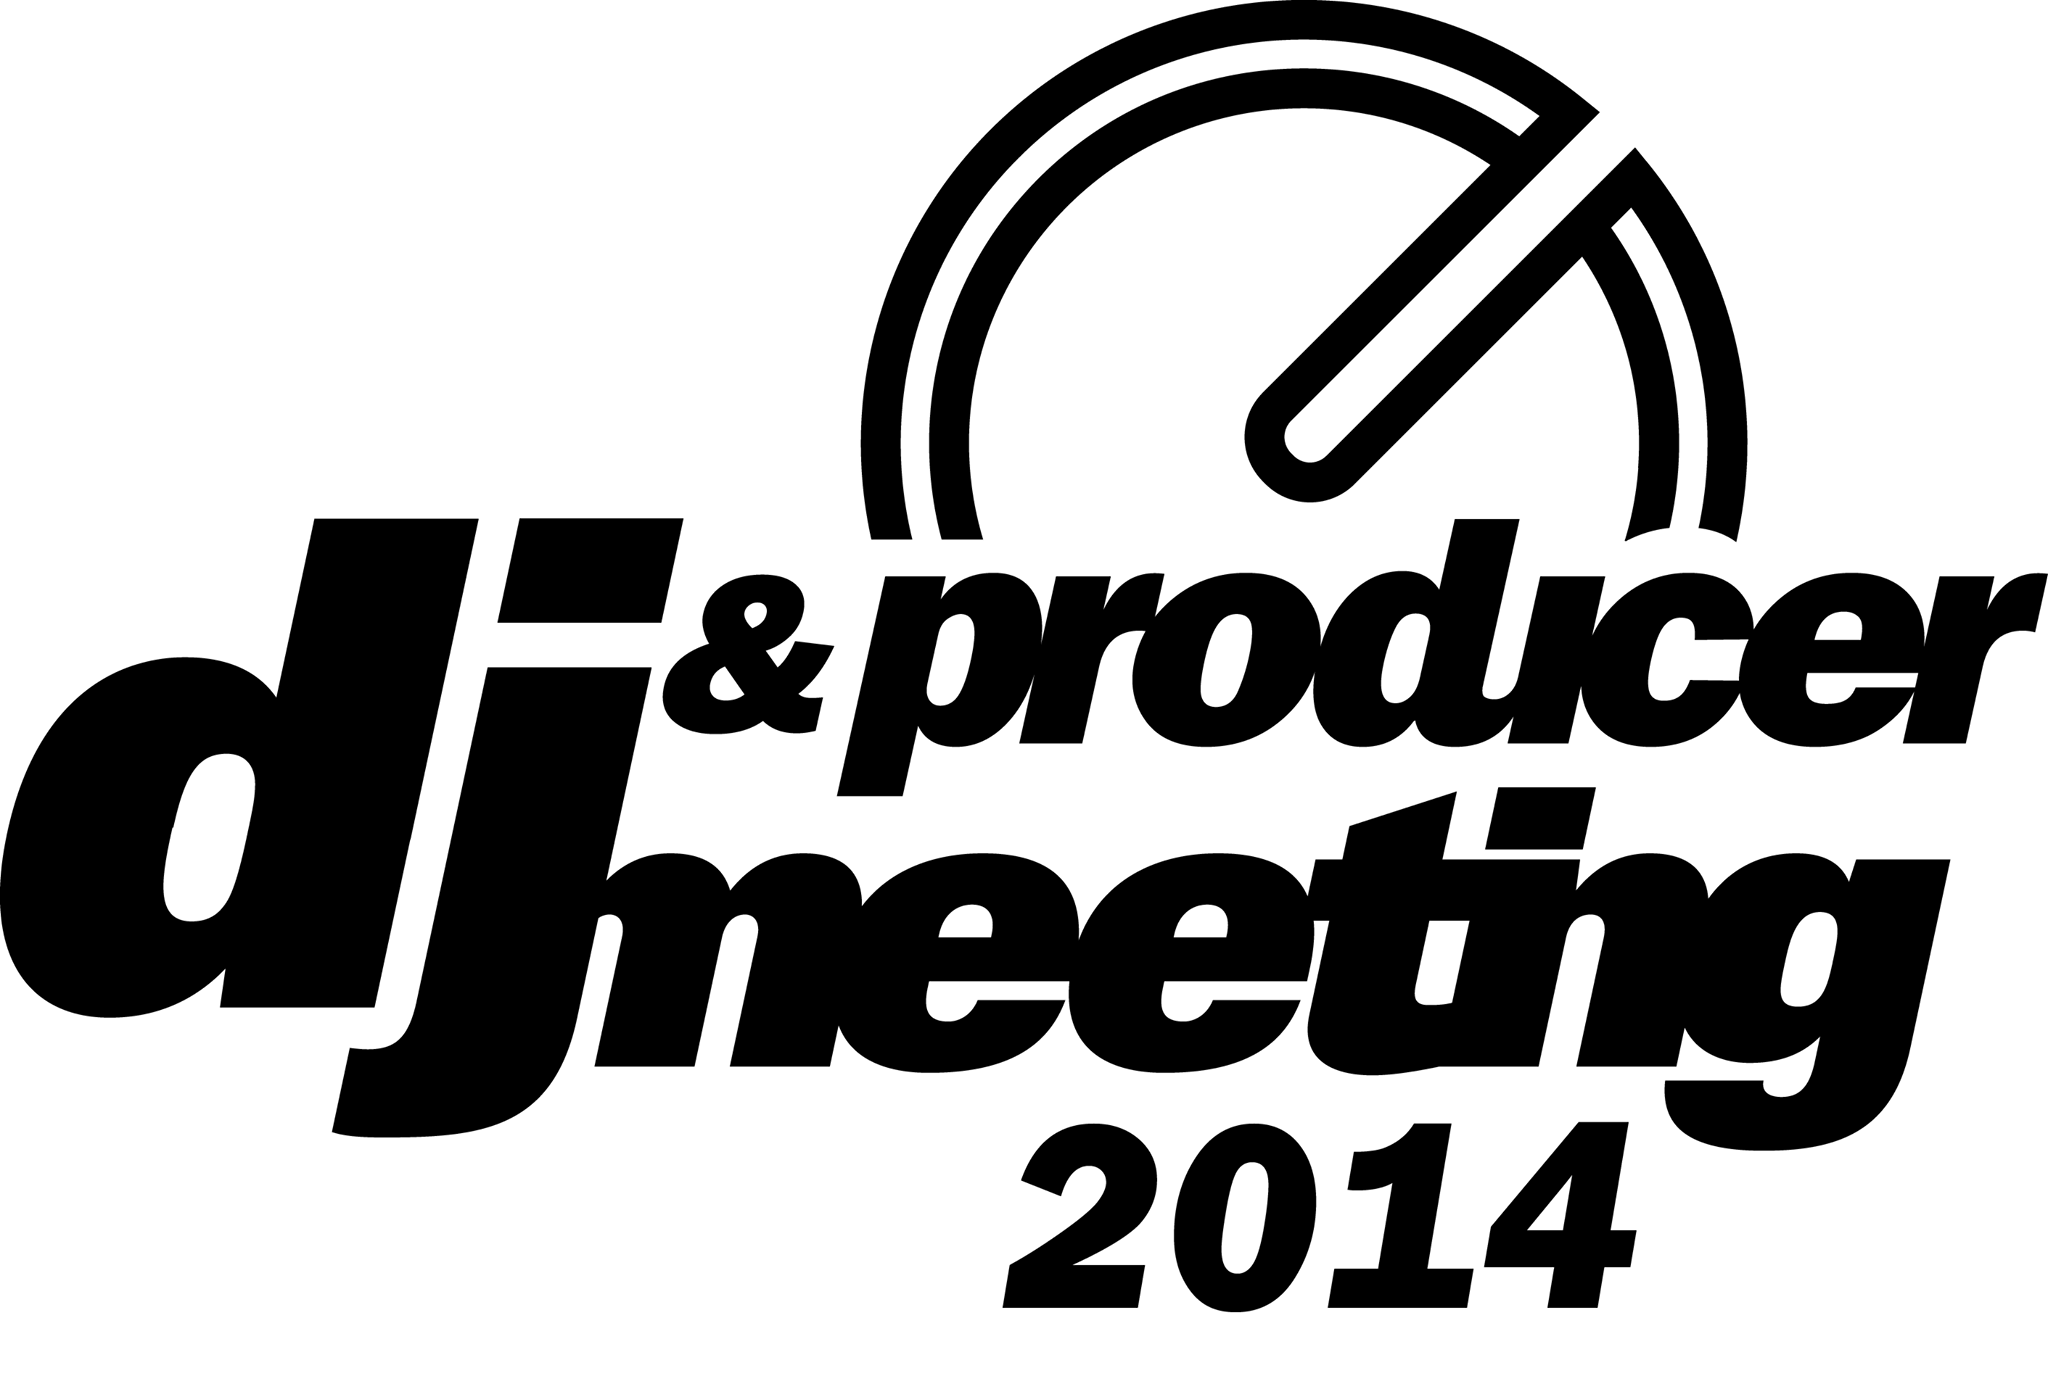 DJ & Producer Meeting 2014 abgesagt!